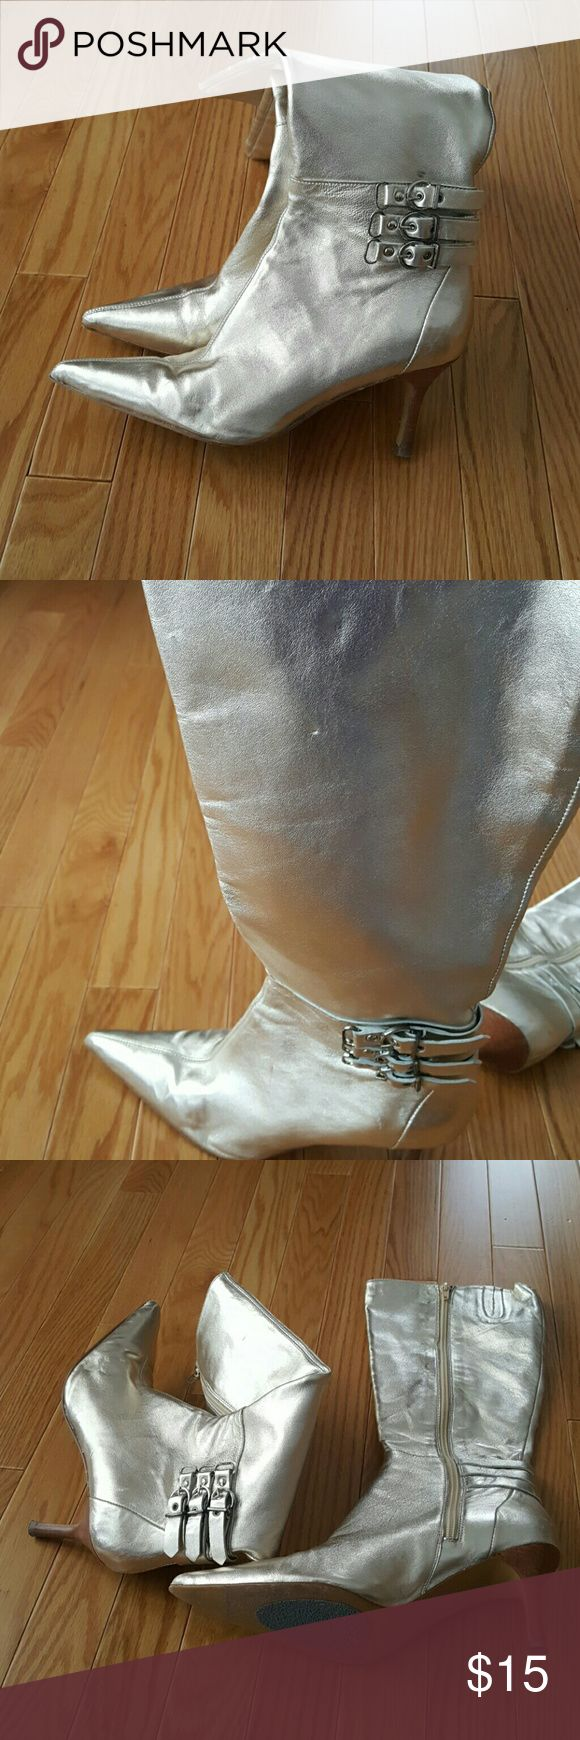 Charles By Charles David Knee High Boots Charles By Charles David Womens Knee High Boots, Gold Metallic Leather, Size 7, Great Condition Charles David Shoes Heeled Boots